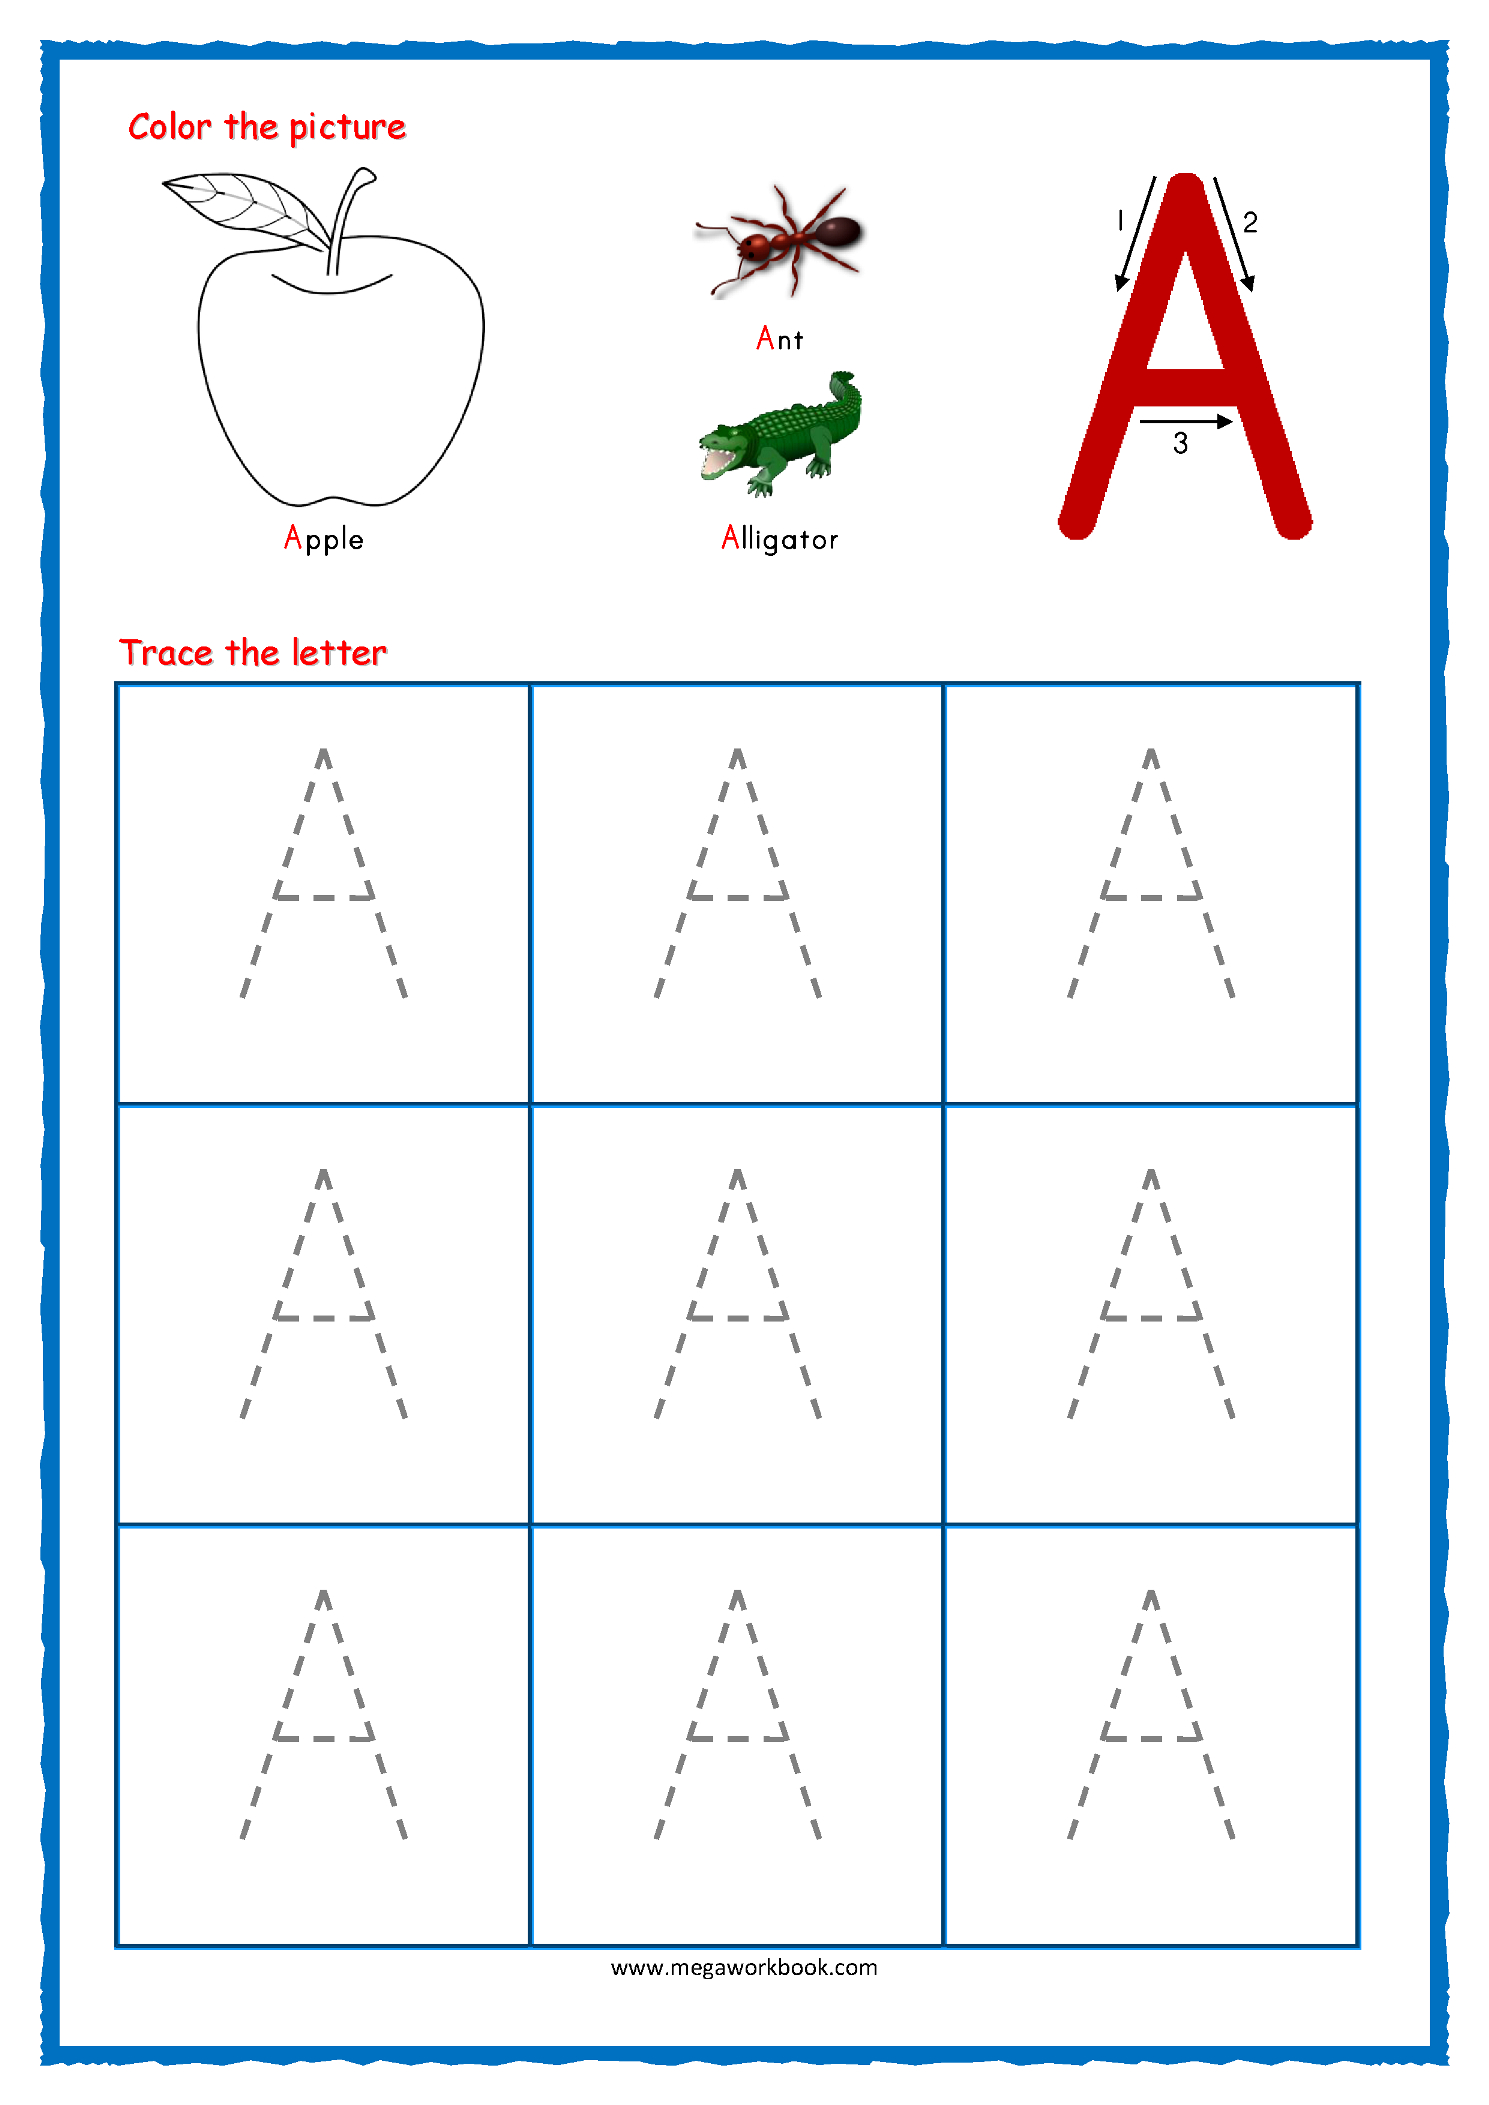 Tracing Letters - Alphabet Tracing - Capital Letters pertaining to Alphabet Tracing Cards Pdf